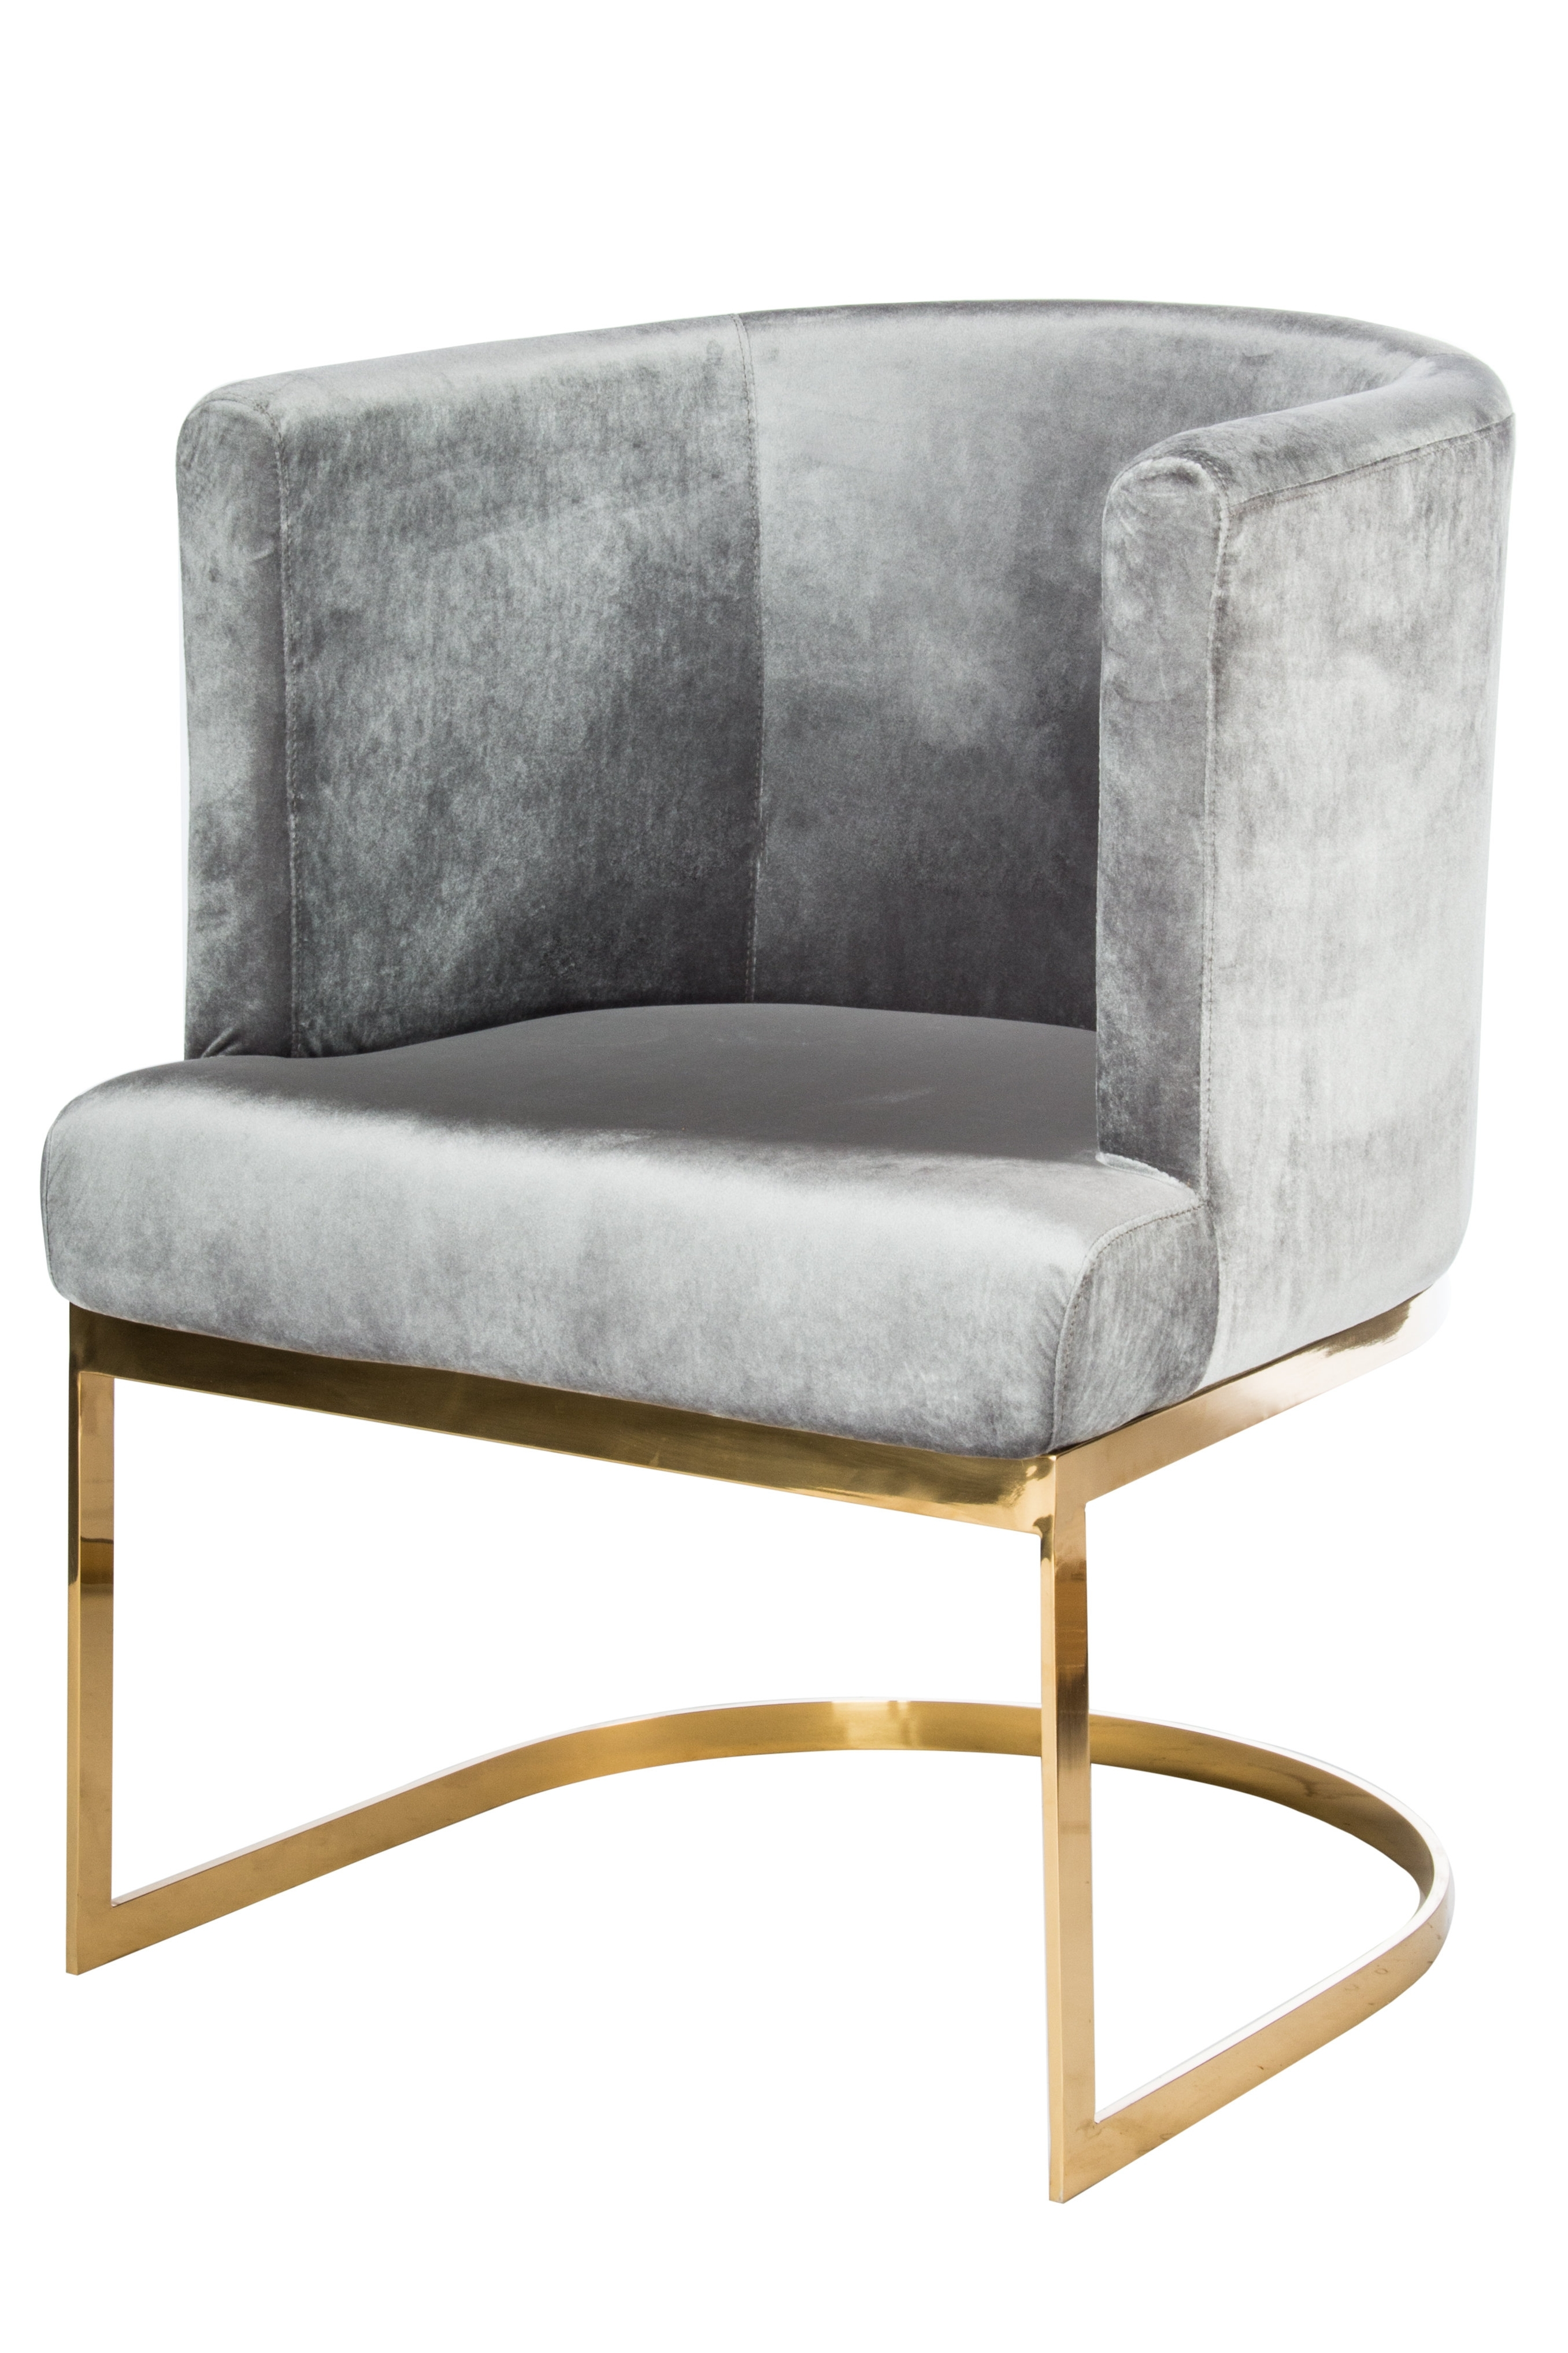 Popular Statementsj Hazel Upholstered Dining Chair & Reviews (View 17 of 20)